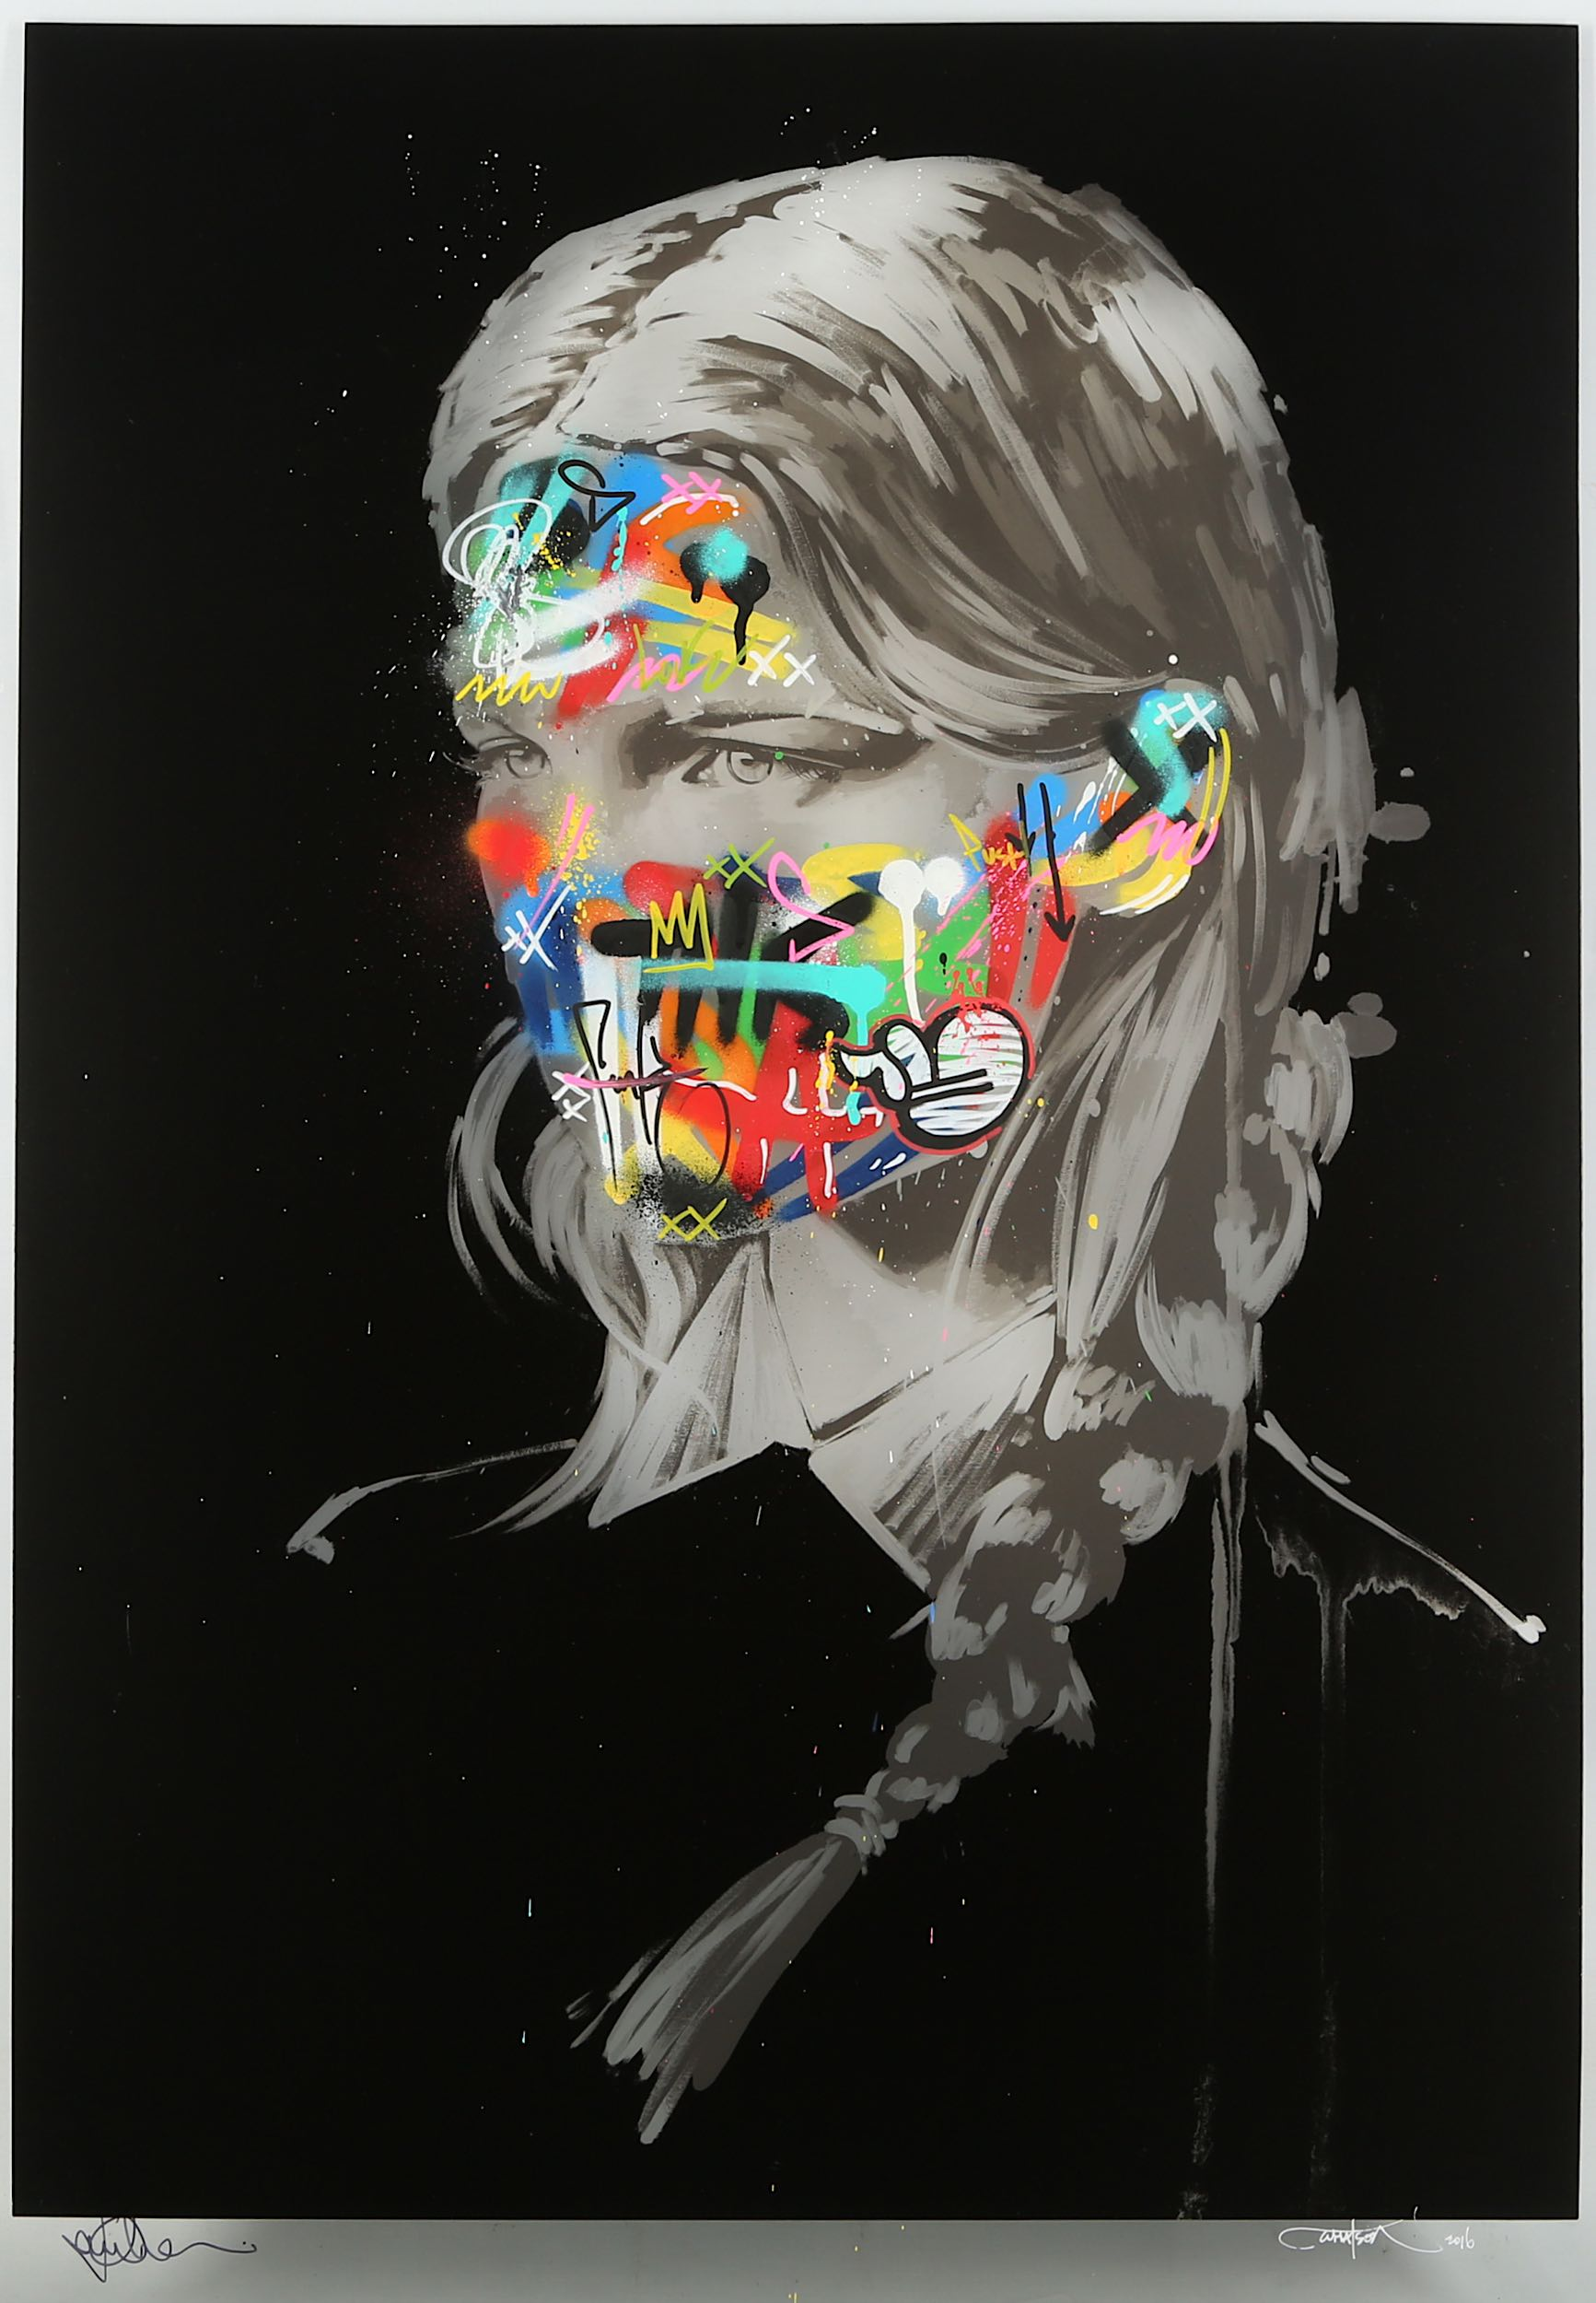 Lot 314 - Martin Whatson x Sandra Chevrier (Colab), 'La Cage Et Les Duex Ames (Hand Finished Clear Acrylic)'